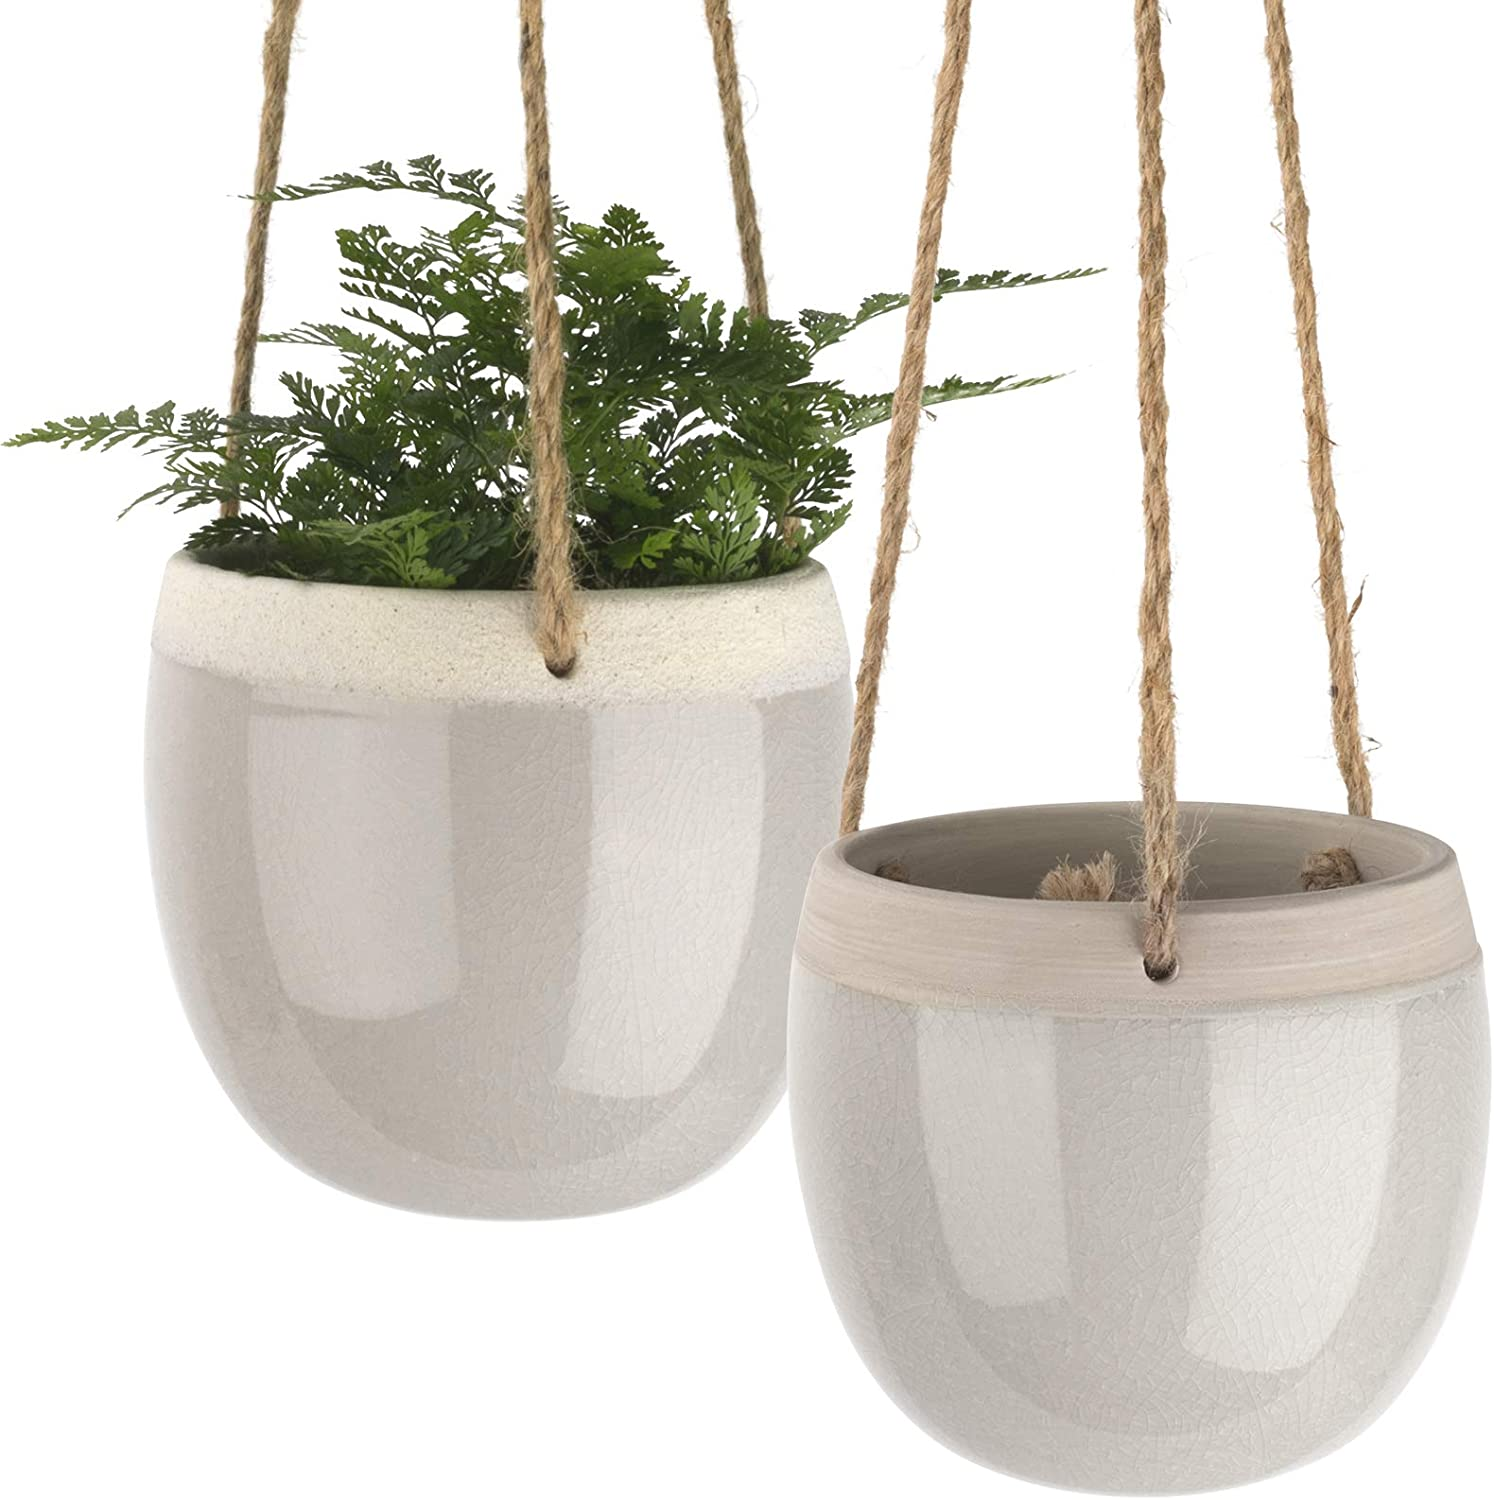 Selling rankings Ceramic Hanging Planters Indoors Ranking TOP5 - Plant Inch 5.5 Pots